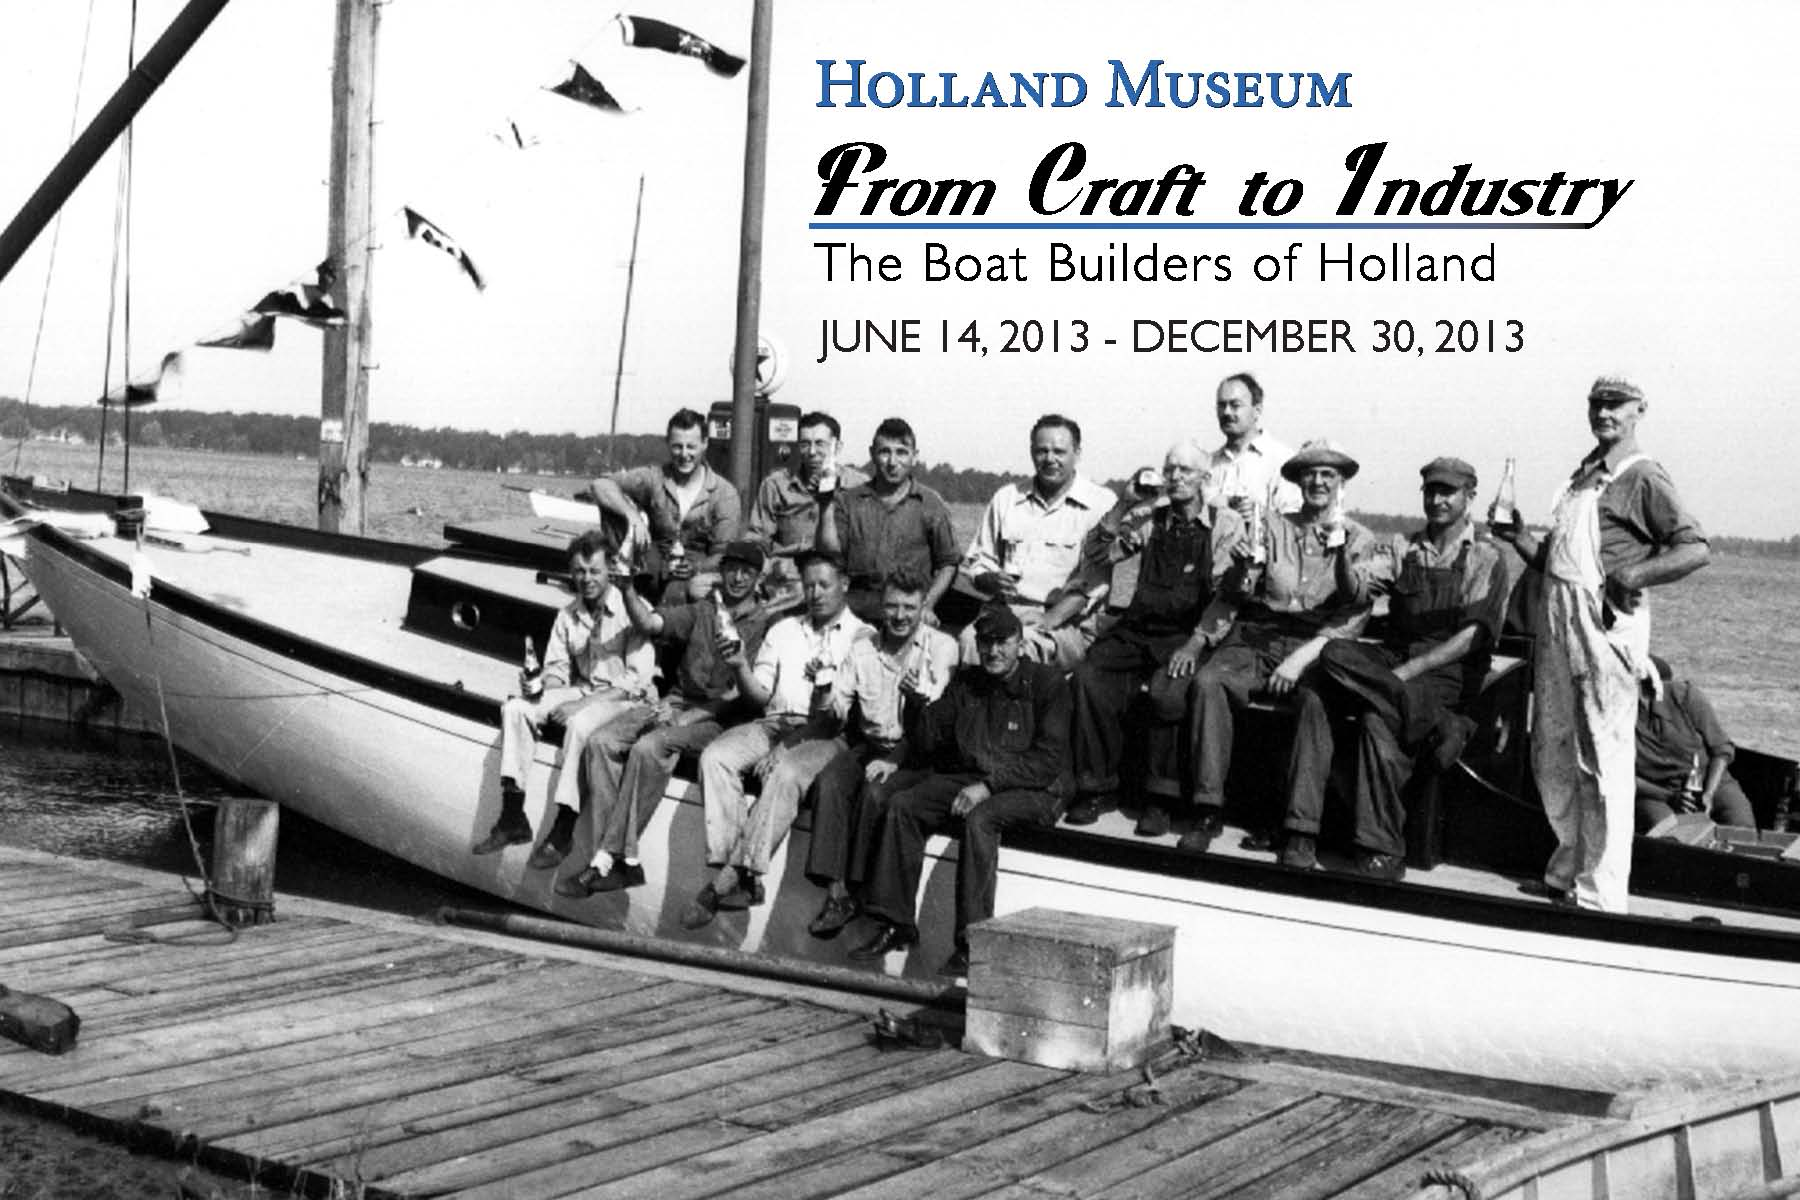 Boat Builders of Holland